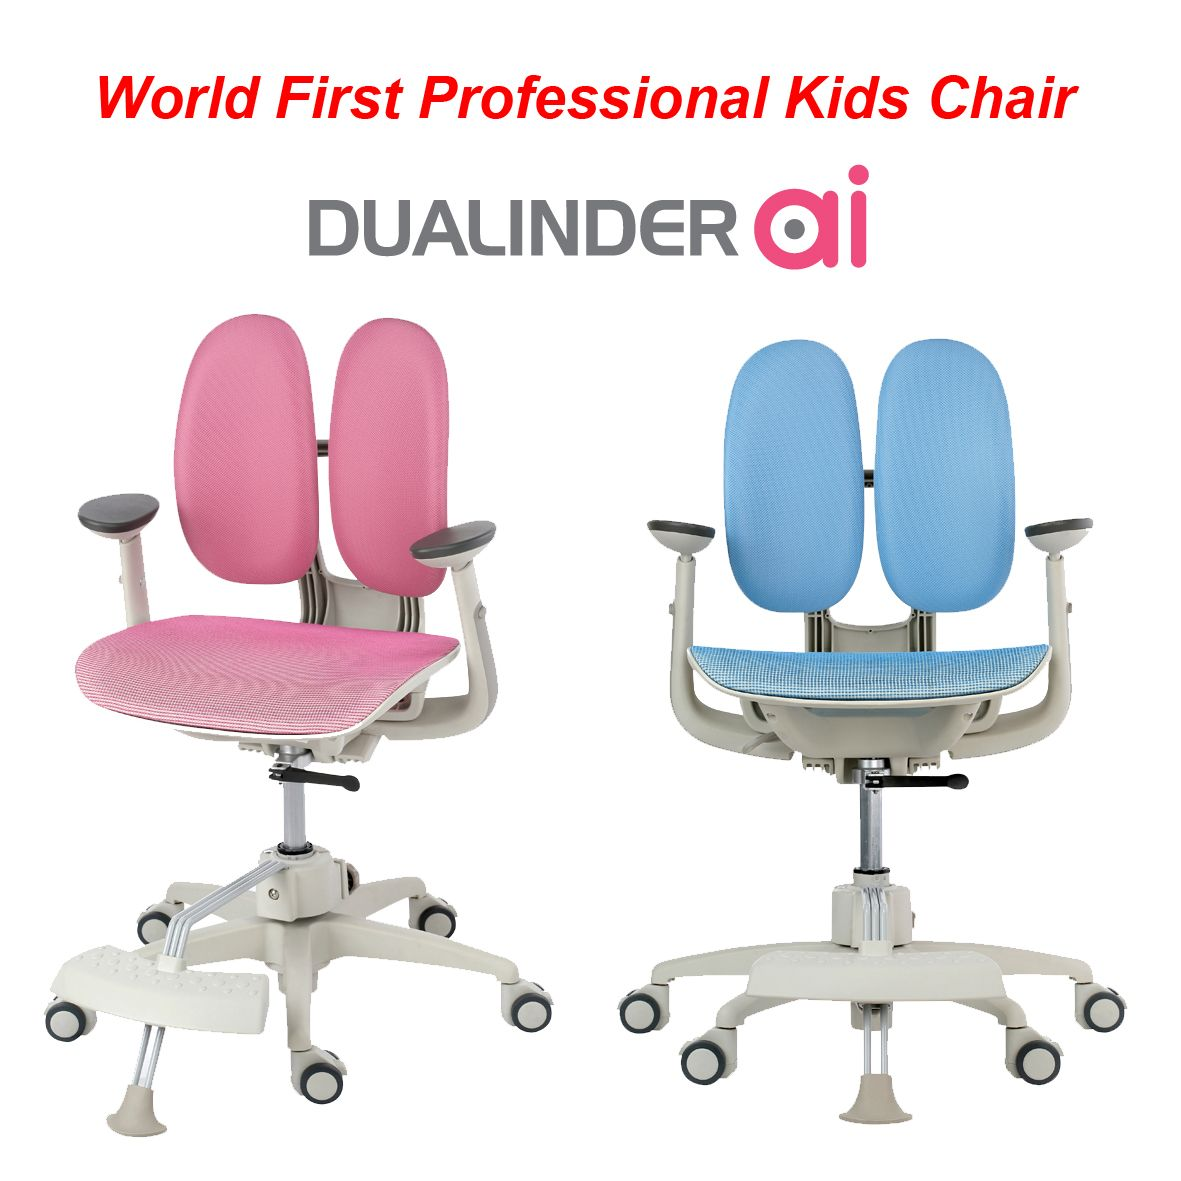 World S First Professional Ergonomic Chair For Kids